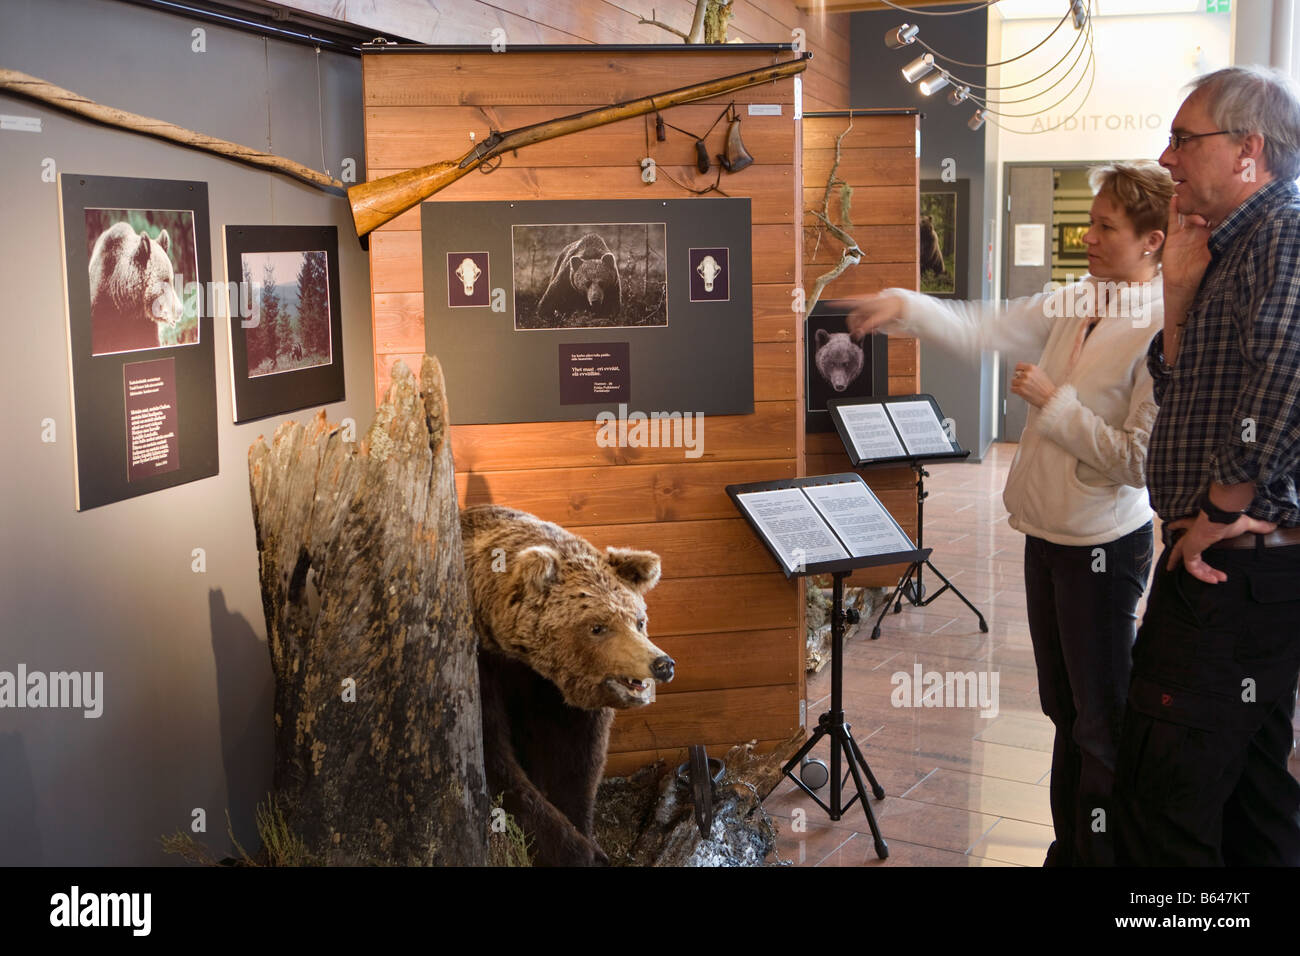 Finland, Kuhmo, Petola Visitor Center. Information about Finland's largest carnivores and preditors, like bear, Stock Photo